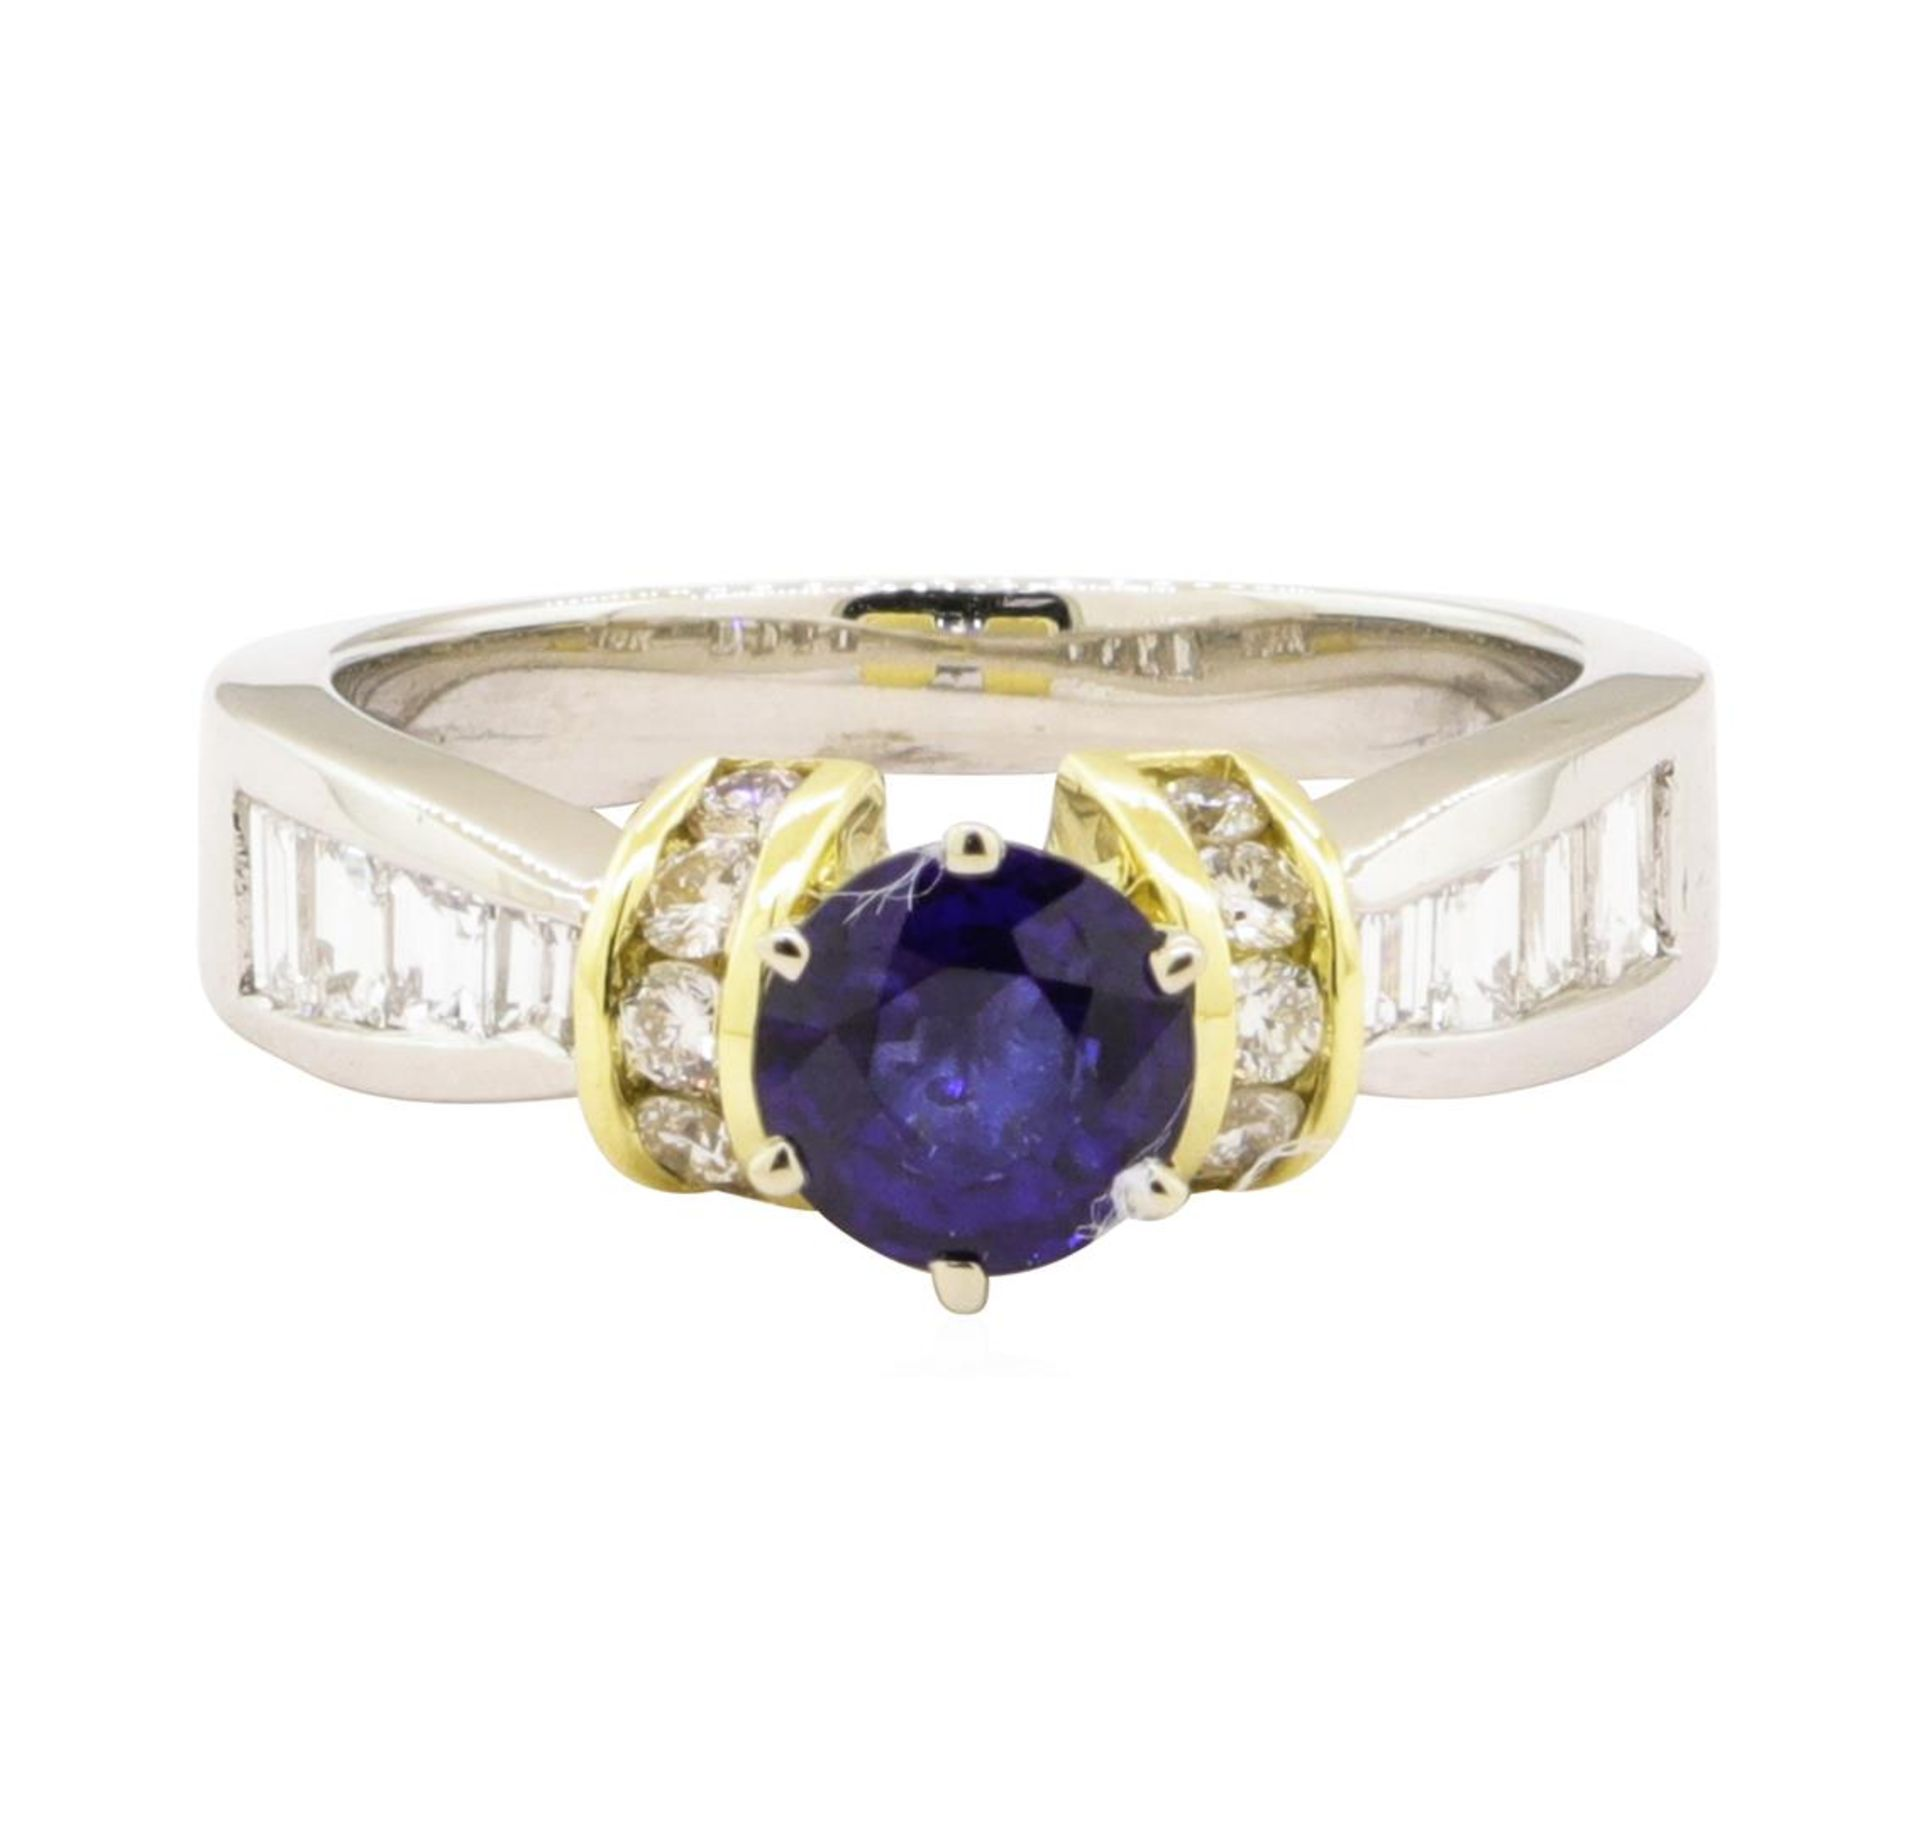 1.65 ctw Blue Sapphire And Diamond Ring - Platinum and 18KT Yellow Gold - Image 2 of 5